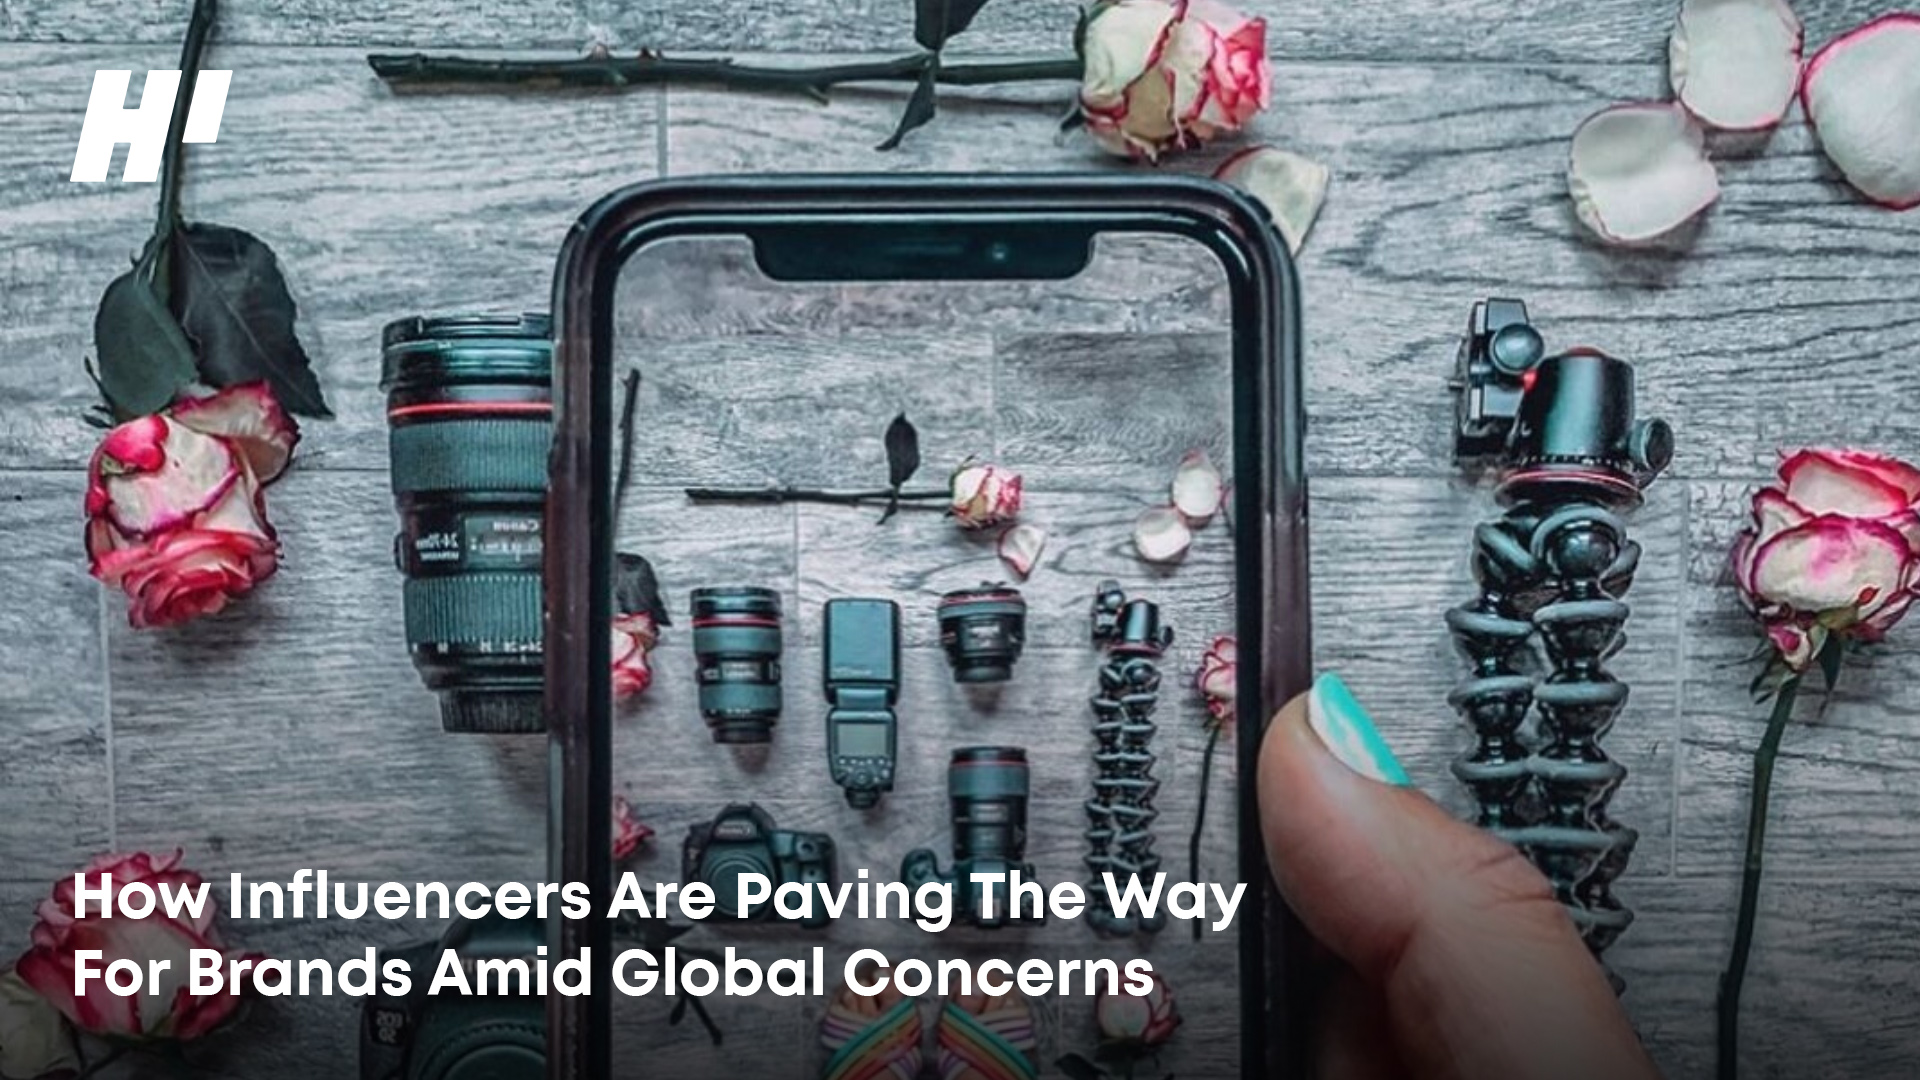 How Influencers Are Paving The Way For Brands Amid Global Concerns